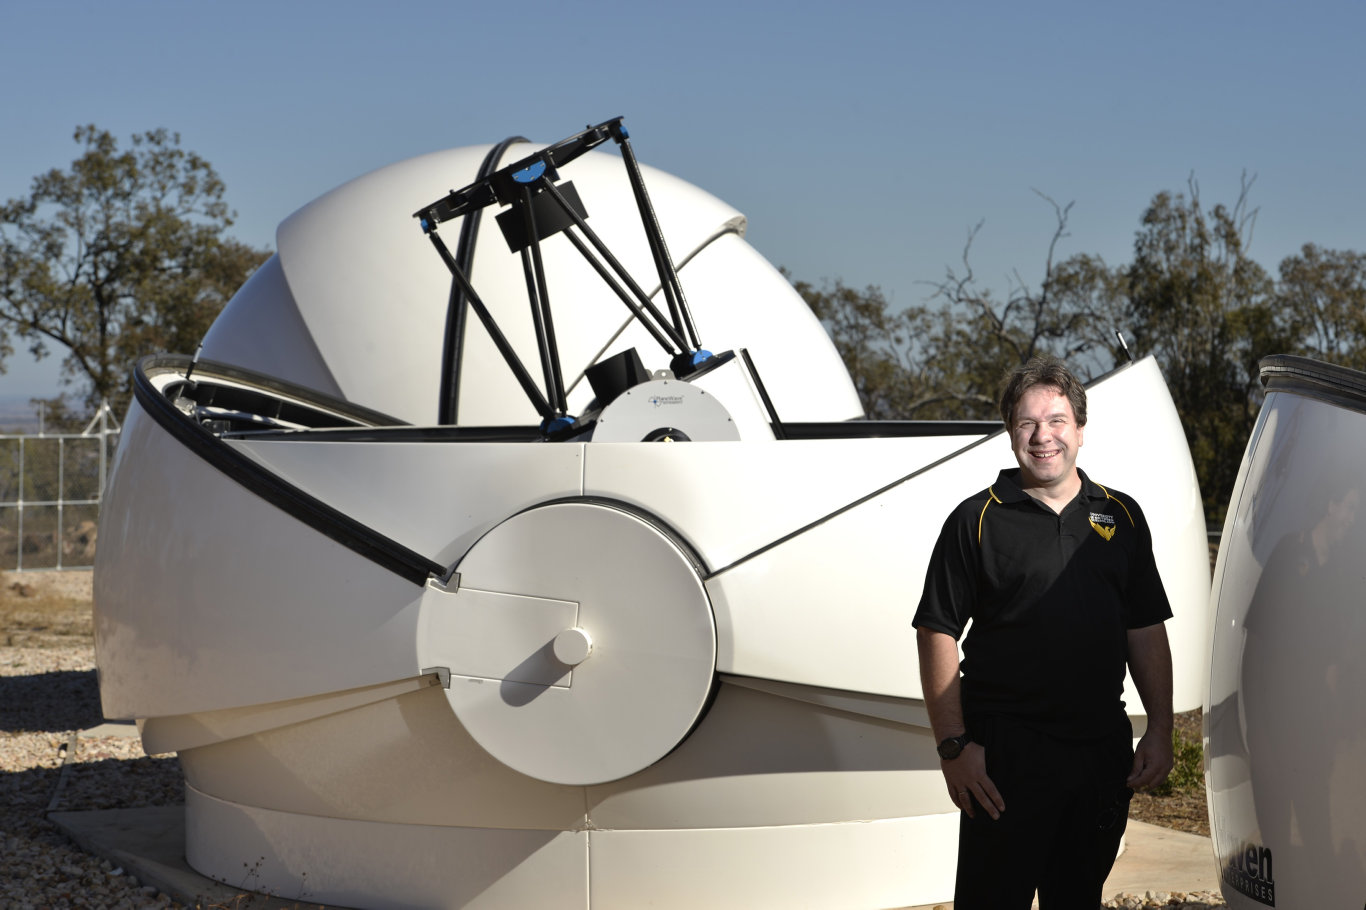 Professor Jonti Horner is happy construction is complete on the Minerva Australis array of telescopes at USQ's Mt Kent observatory, Tuesday, July 23, 2019.